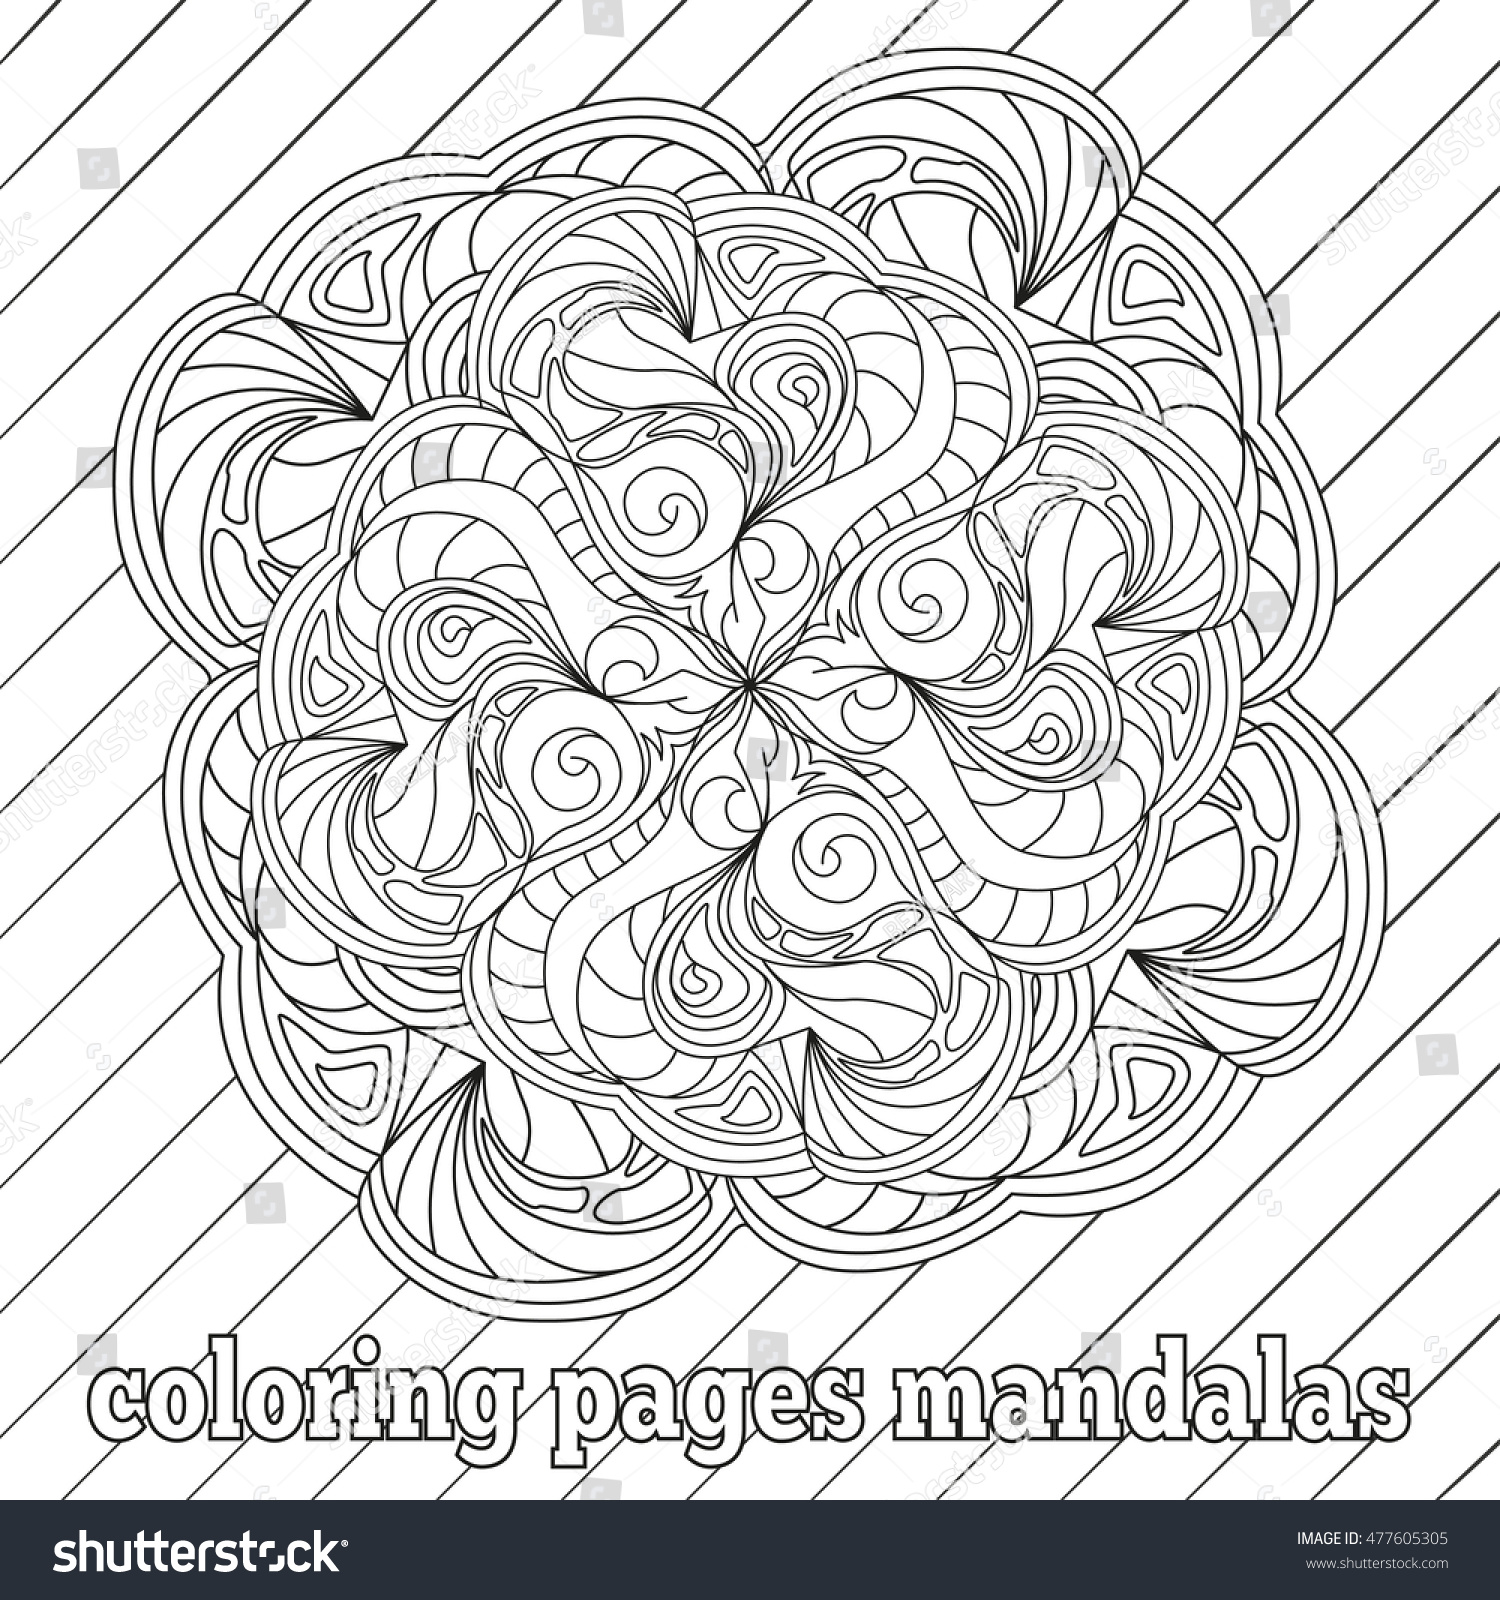 Anti stress colouring pages for adults - Anti Stress Coloring Pages For Adults And Older Children Lines Swirls Spots